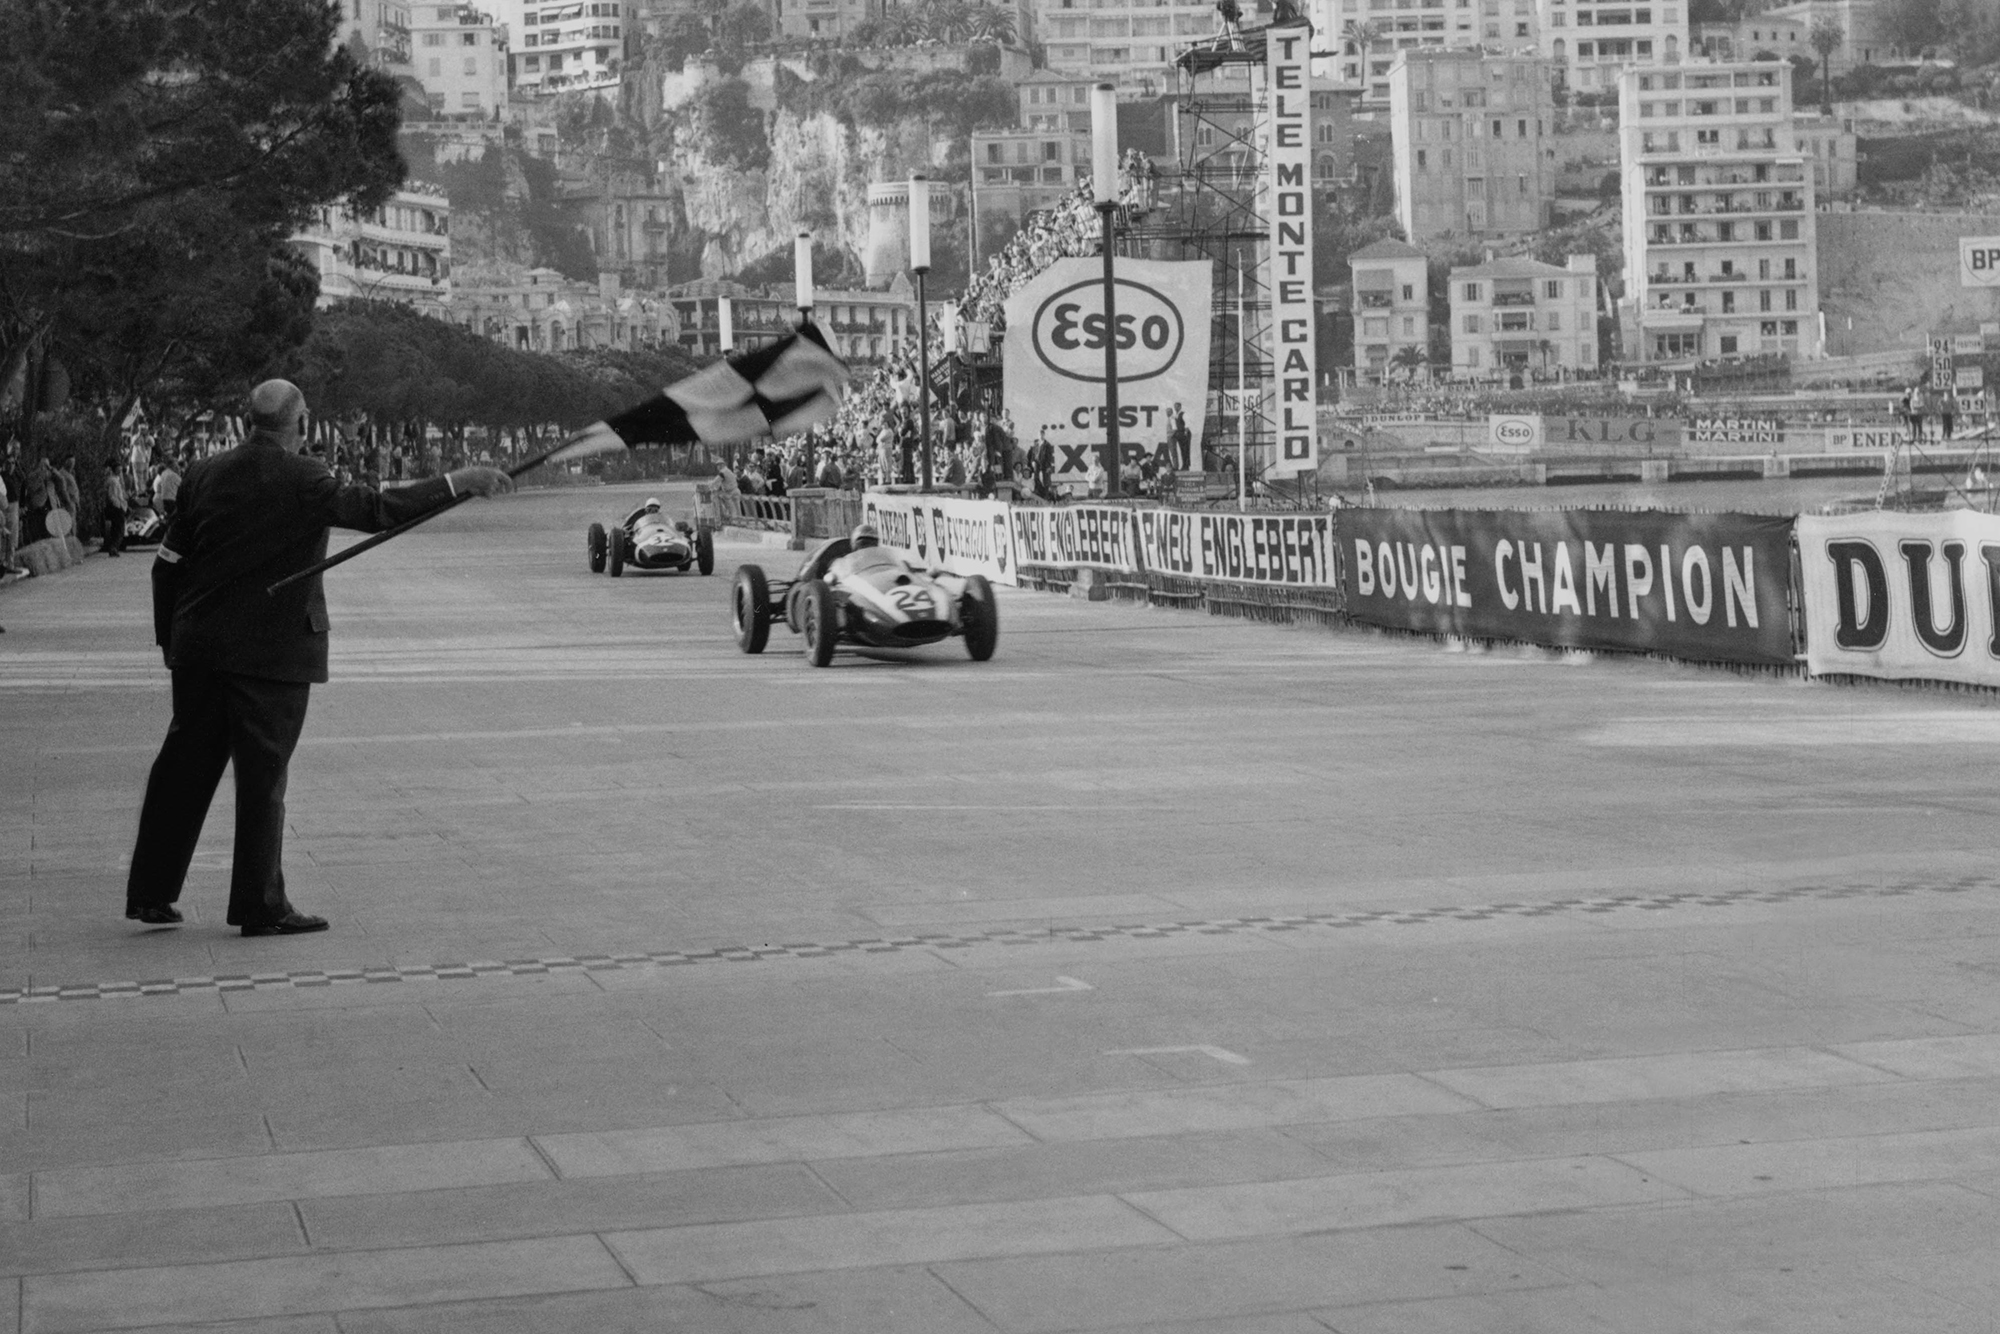 Jack Brabham takes the chequered flag for the win